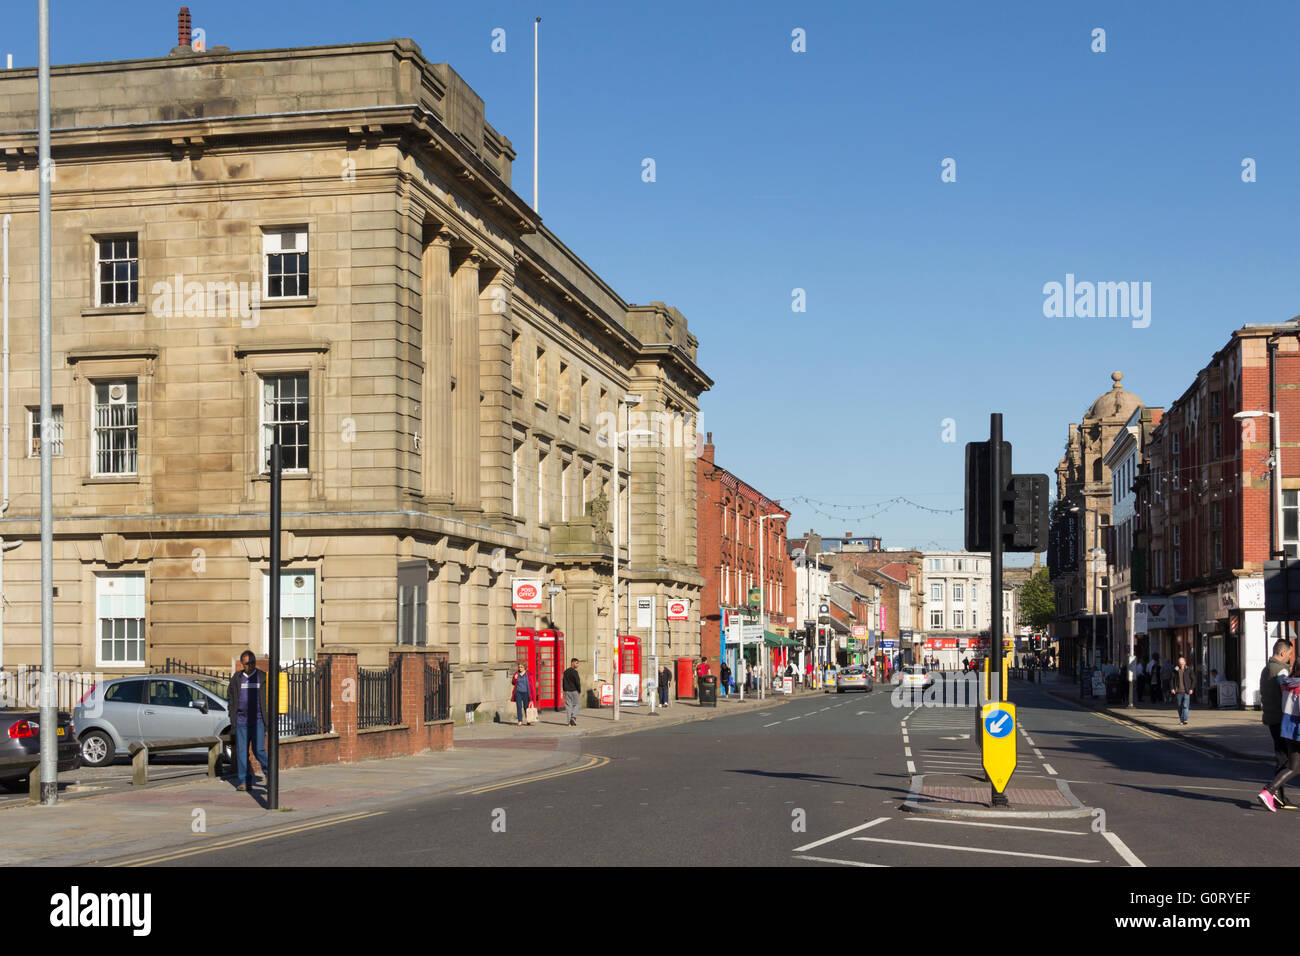 Deansgate, Bolton, looking east with the central post office building left foreground. - Stock Image